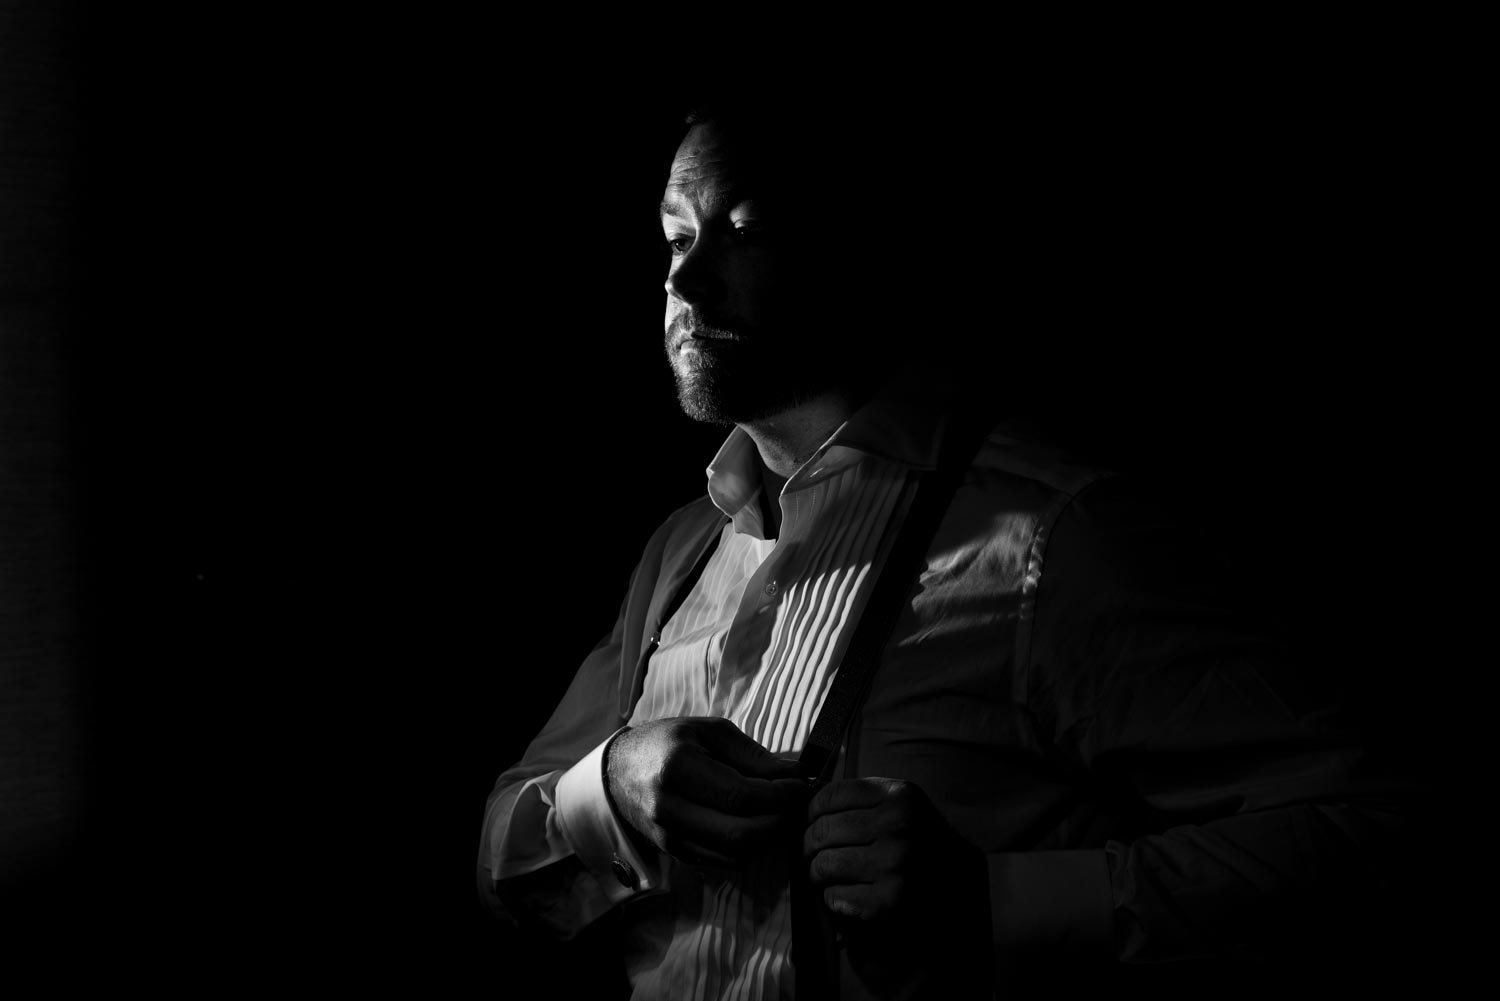 Dramatic black and white portrait of the groom taken inside his room before the wedding.